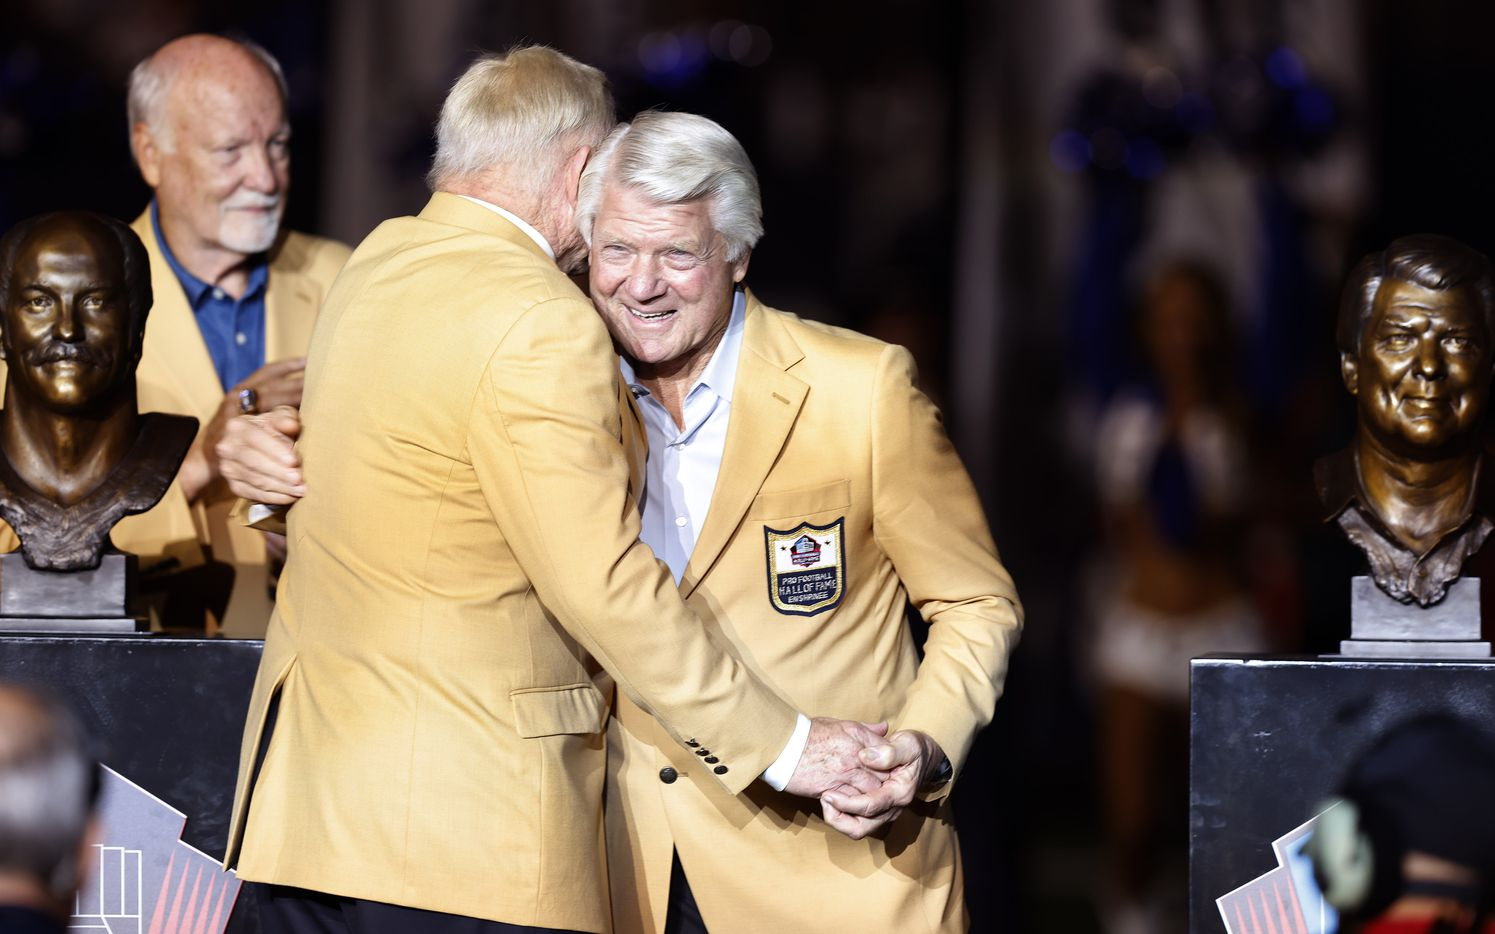 Dallas Cowboys owner Jerry Jones (left) hugs fellow Cowboys Pro Football Hall of Famer Jimmy Johnson during the Hall ring ceremony at AT&T Stadium in Arlington, Monday, September 27, 2021. Jones gave his former coach his Hall of Fame ring.  (Tom Fox/The Dallas Morning News)